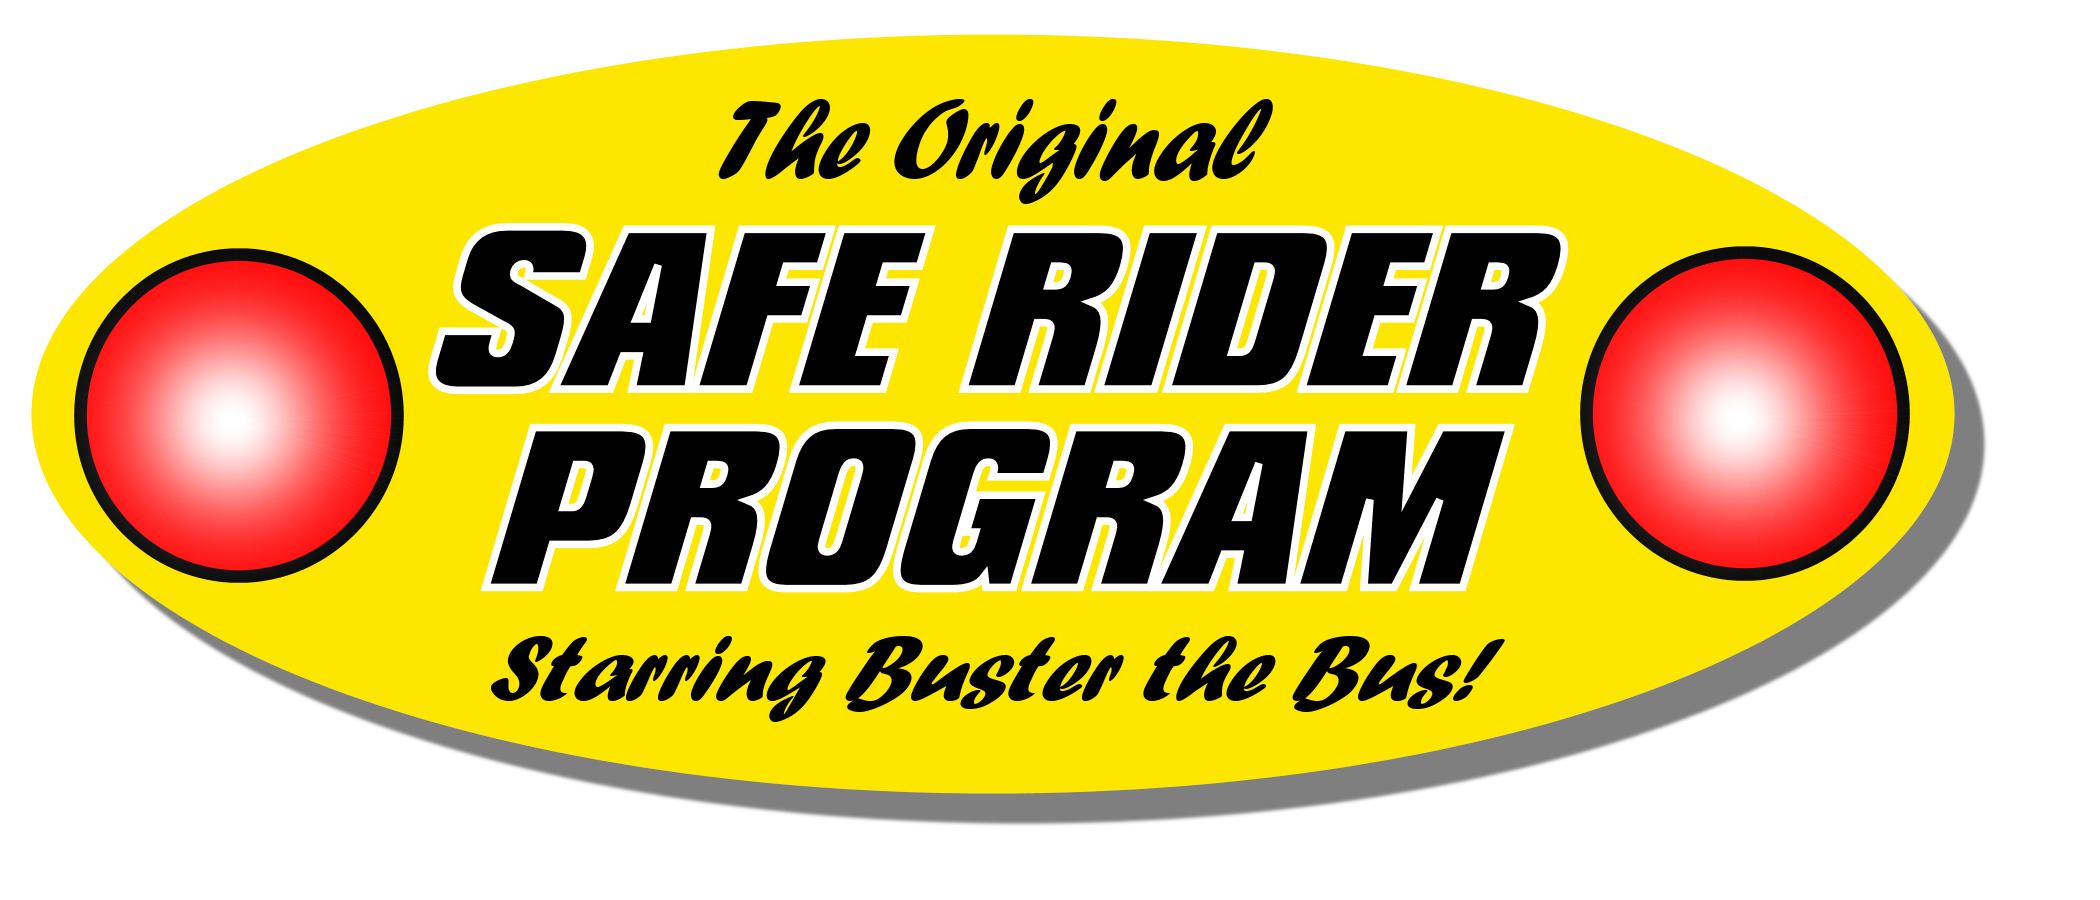 The Safe Rider Program Starring Buster the Bus